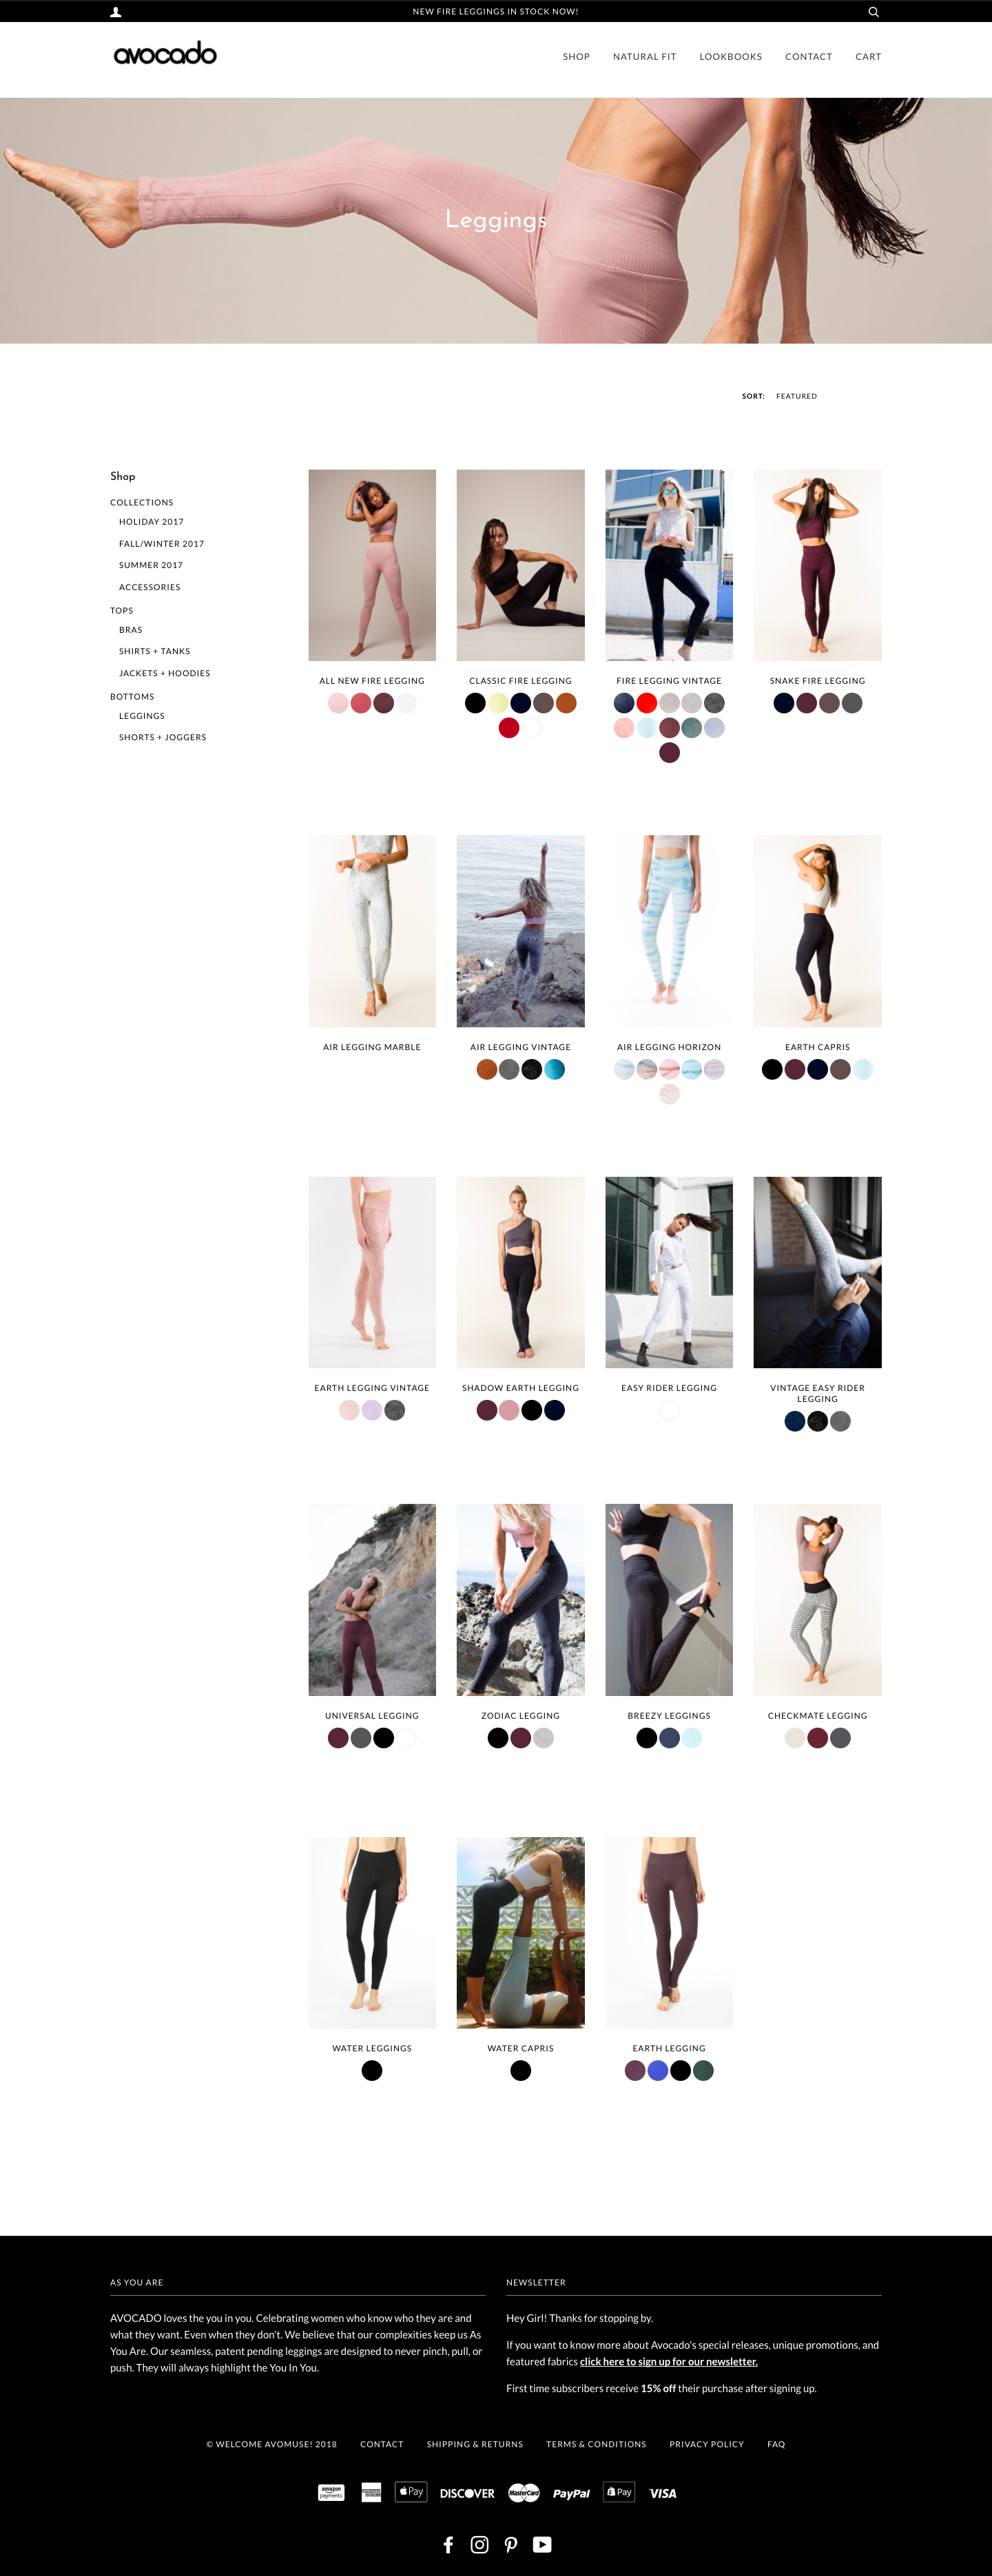 screencapture-shopavocado-collections-leggings-1517360110459.png